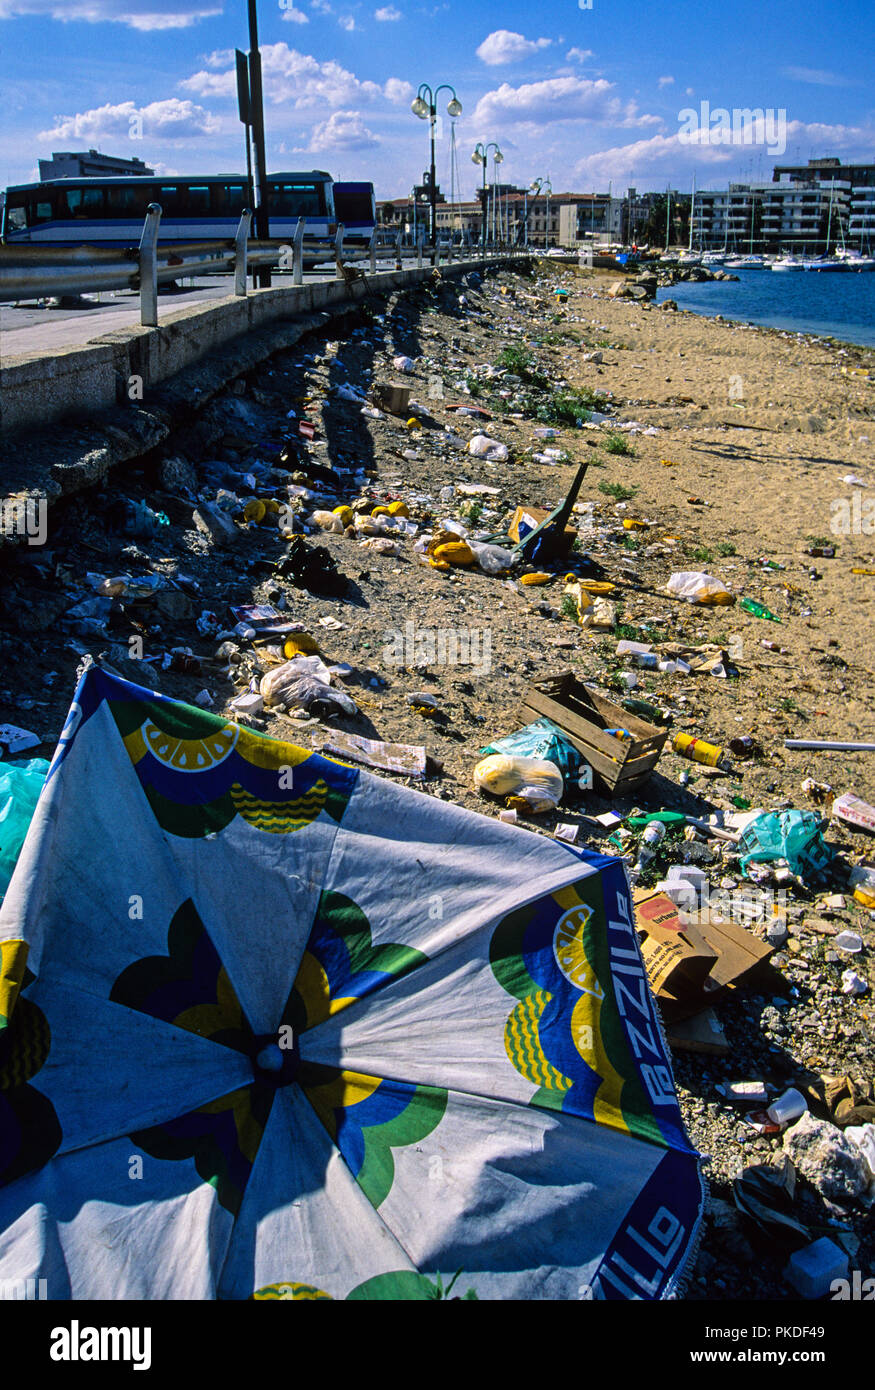 Rubbish on Beach, Plastic pollution, Sircussus, Sicily, Italy, Europe. - Stock Image